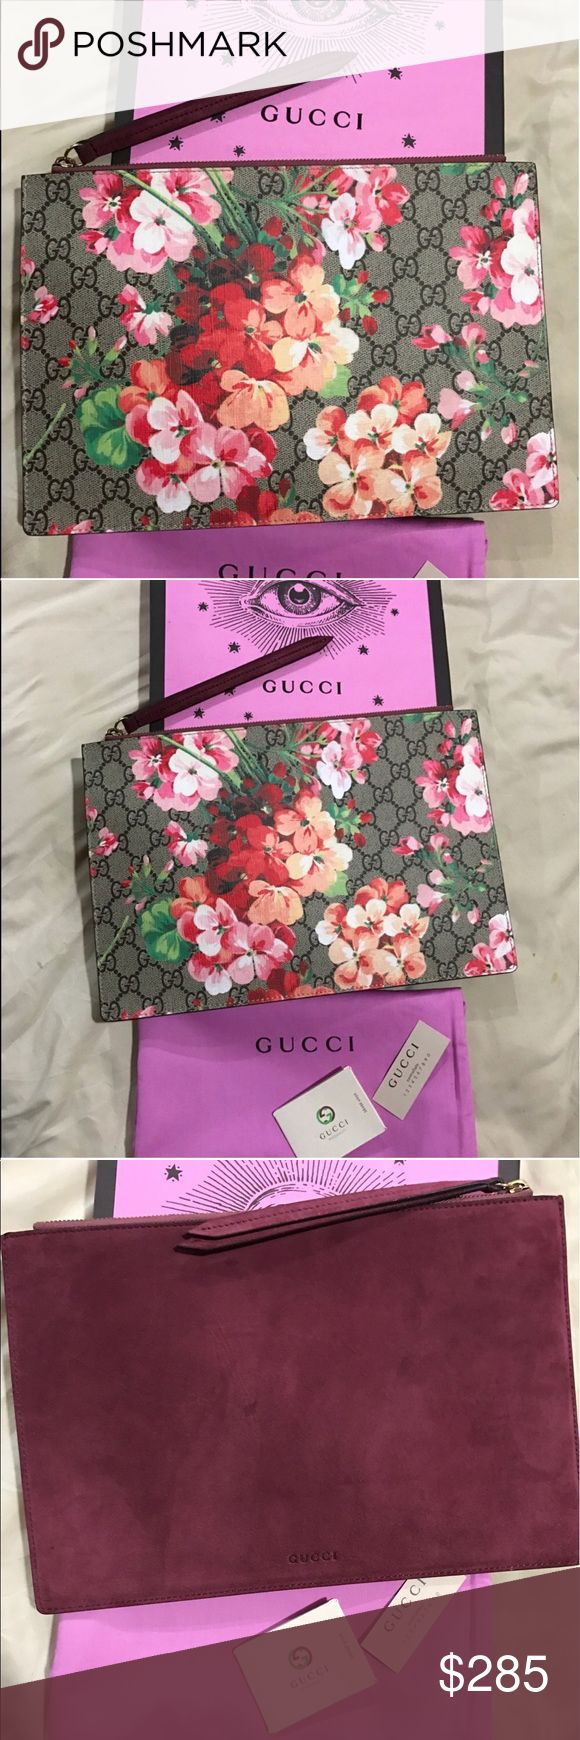 GUCCI BLOOMS FLORAL CLUTCH BAG 🌺🌸🌷 Brand new with box and dustbag. Amazing quality. Large size clutch bag.price r e f l e c t s!! No trades 🌸🌺 Gucci Bags